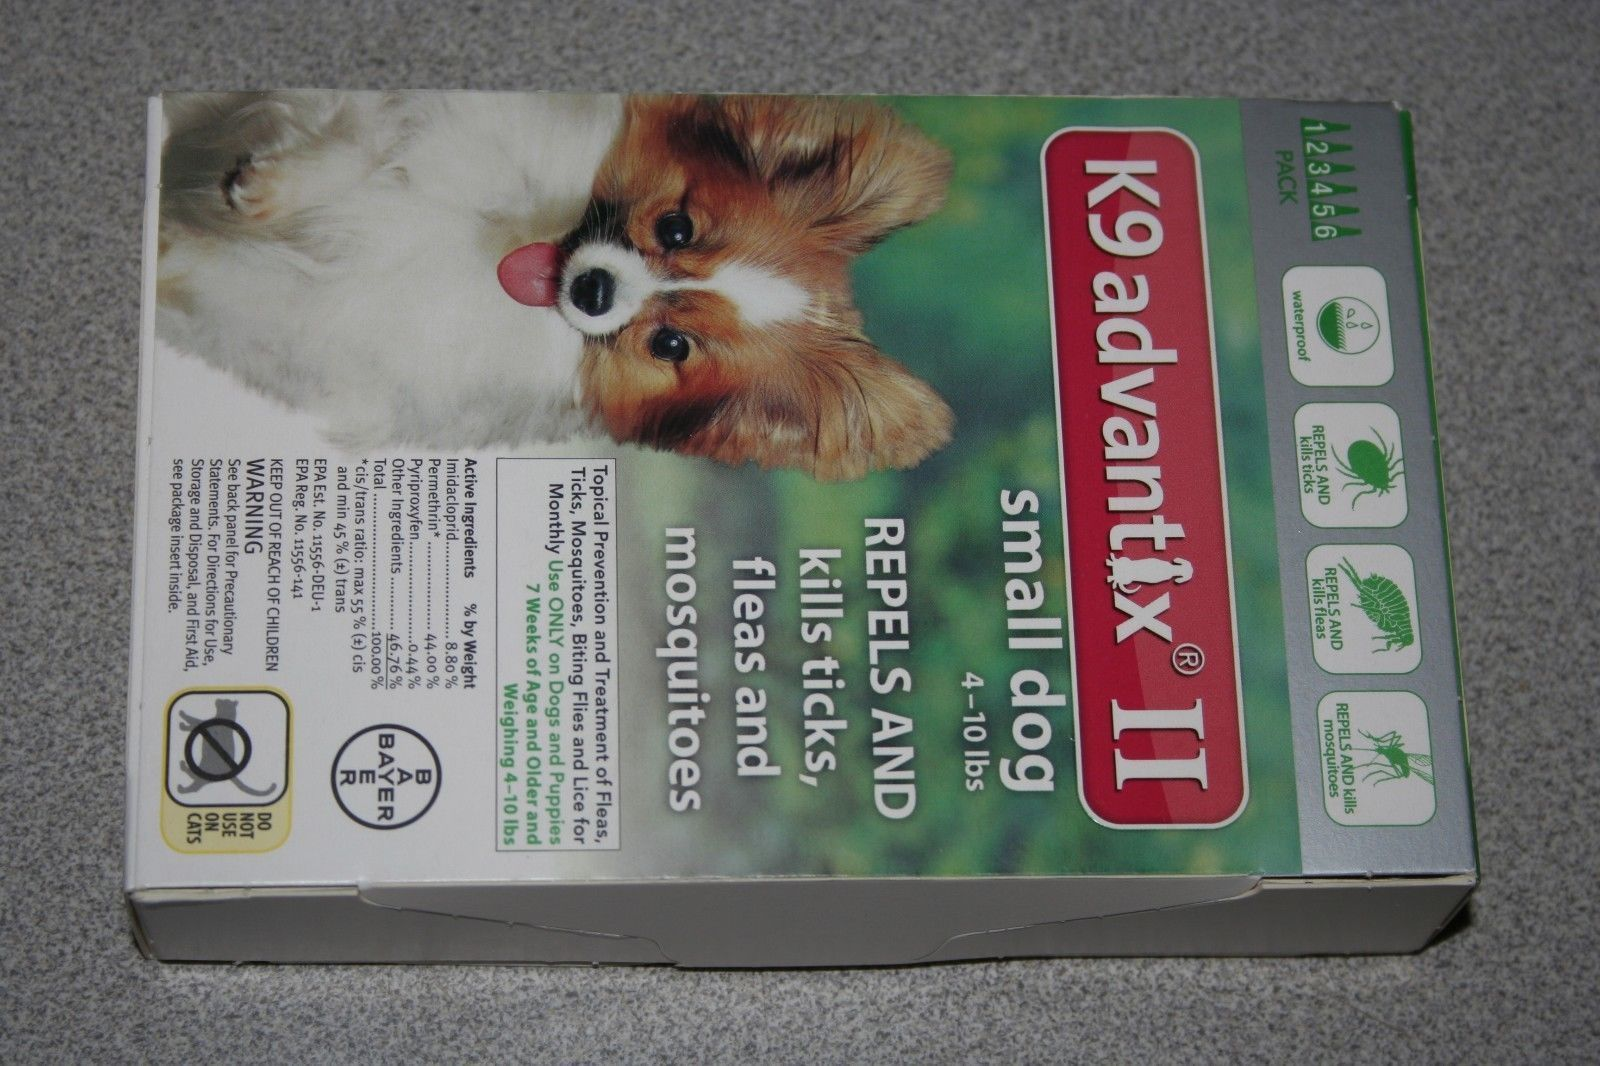 Flea And Tick Remedies 20749 Bayer K9 Advantix Ii Small Dog 4 10lbs 6 Month Pack New Buy It Now Only 59 25 On Ebay Fleas Small Dogs Flea And Tick